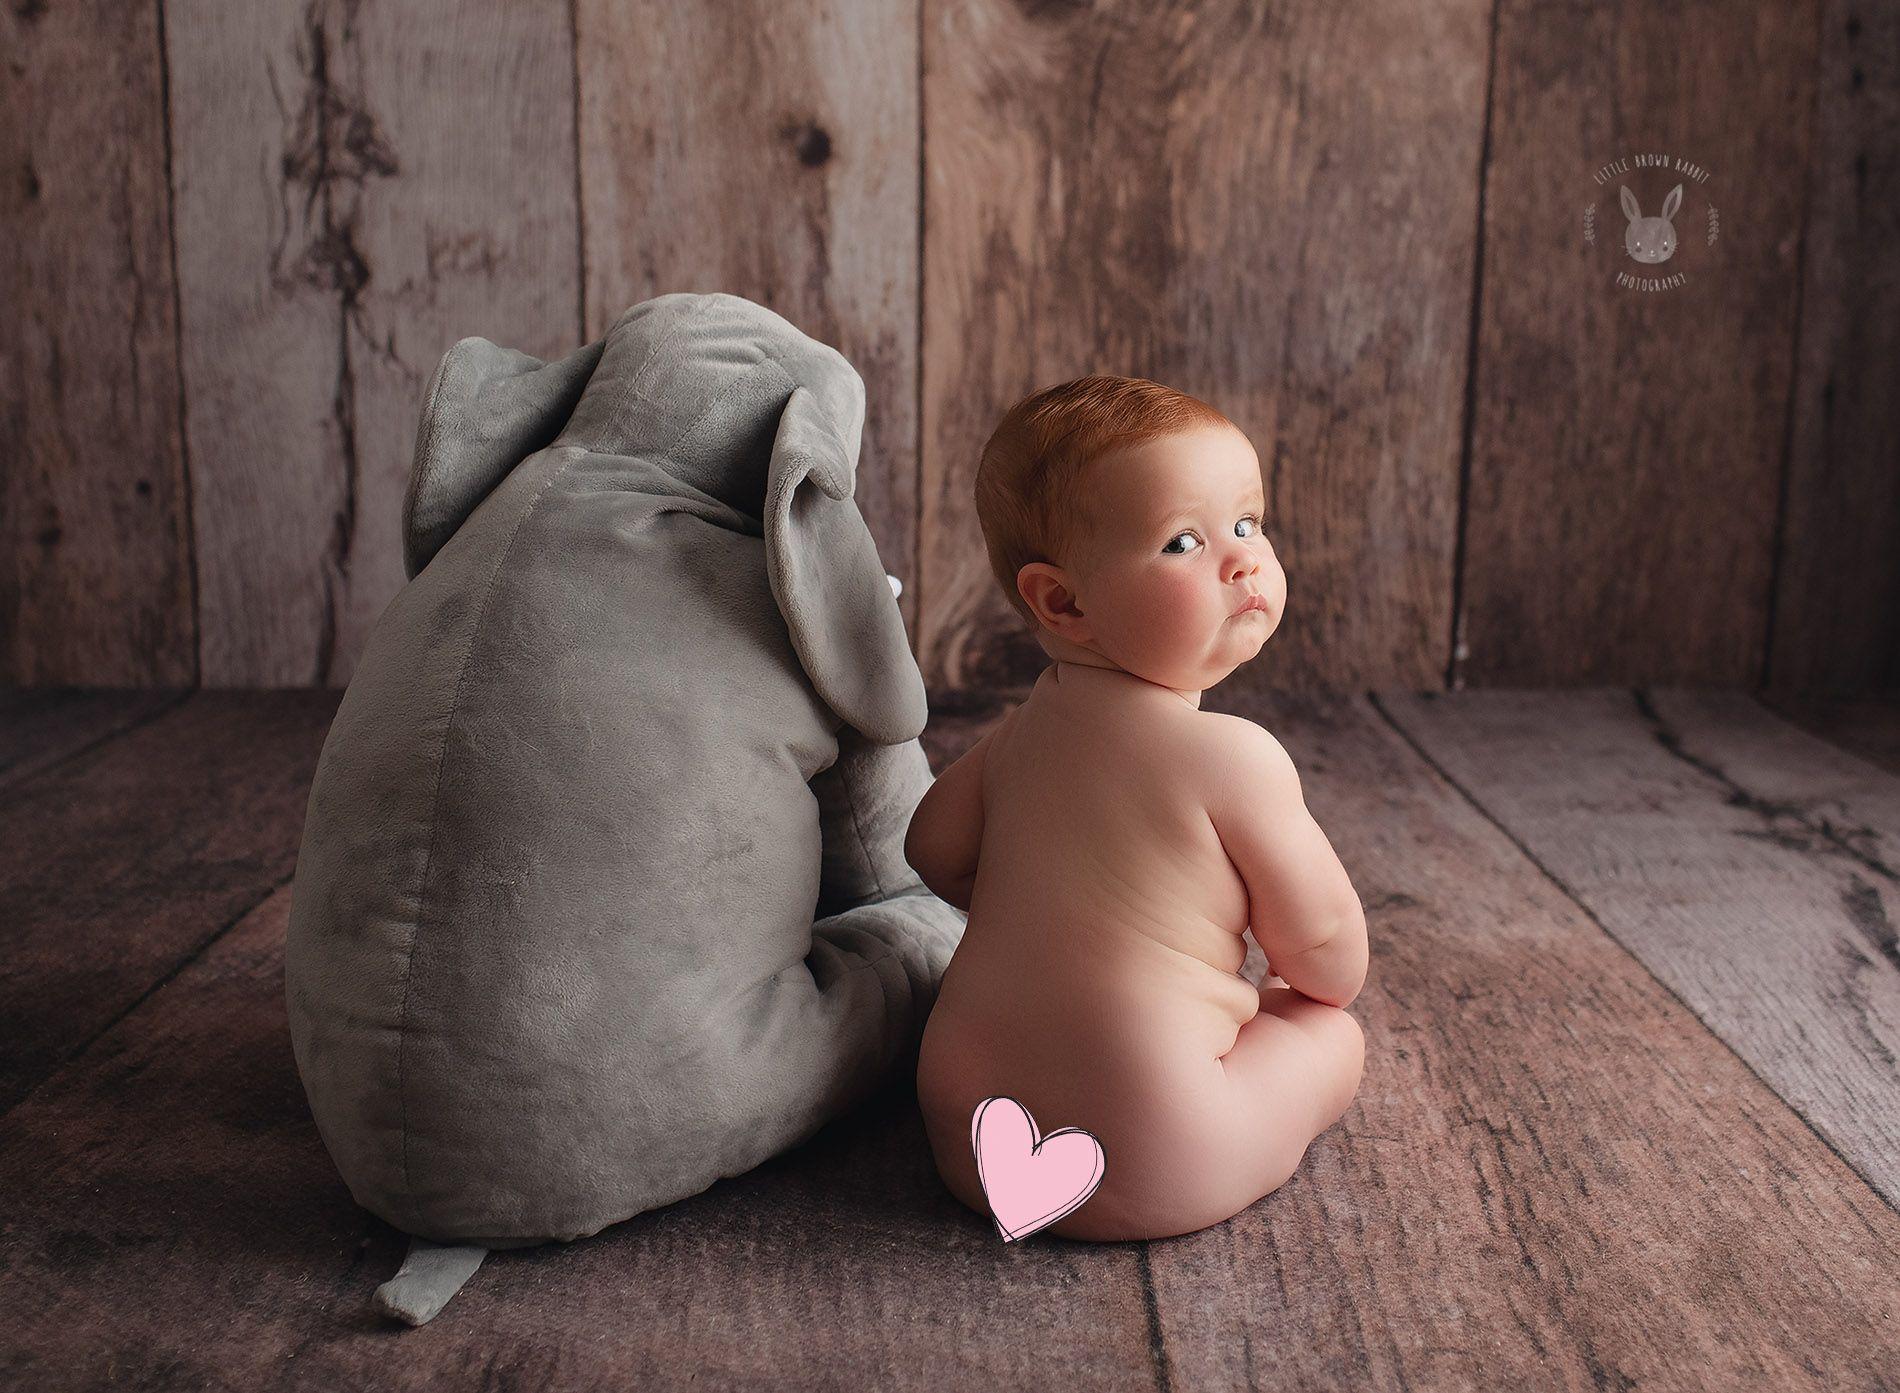 Little Brown Rabbit Photography - Baby photographer in Perth - red head baby next to toy elephant